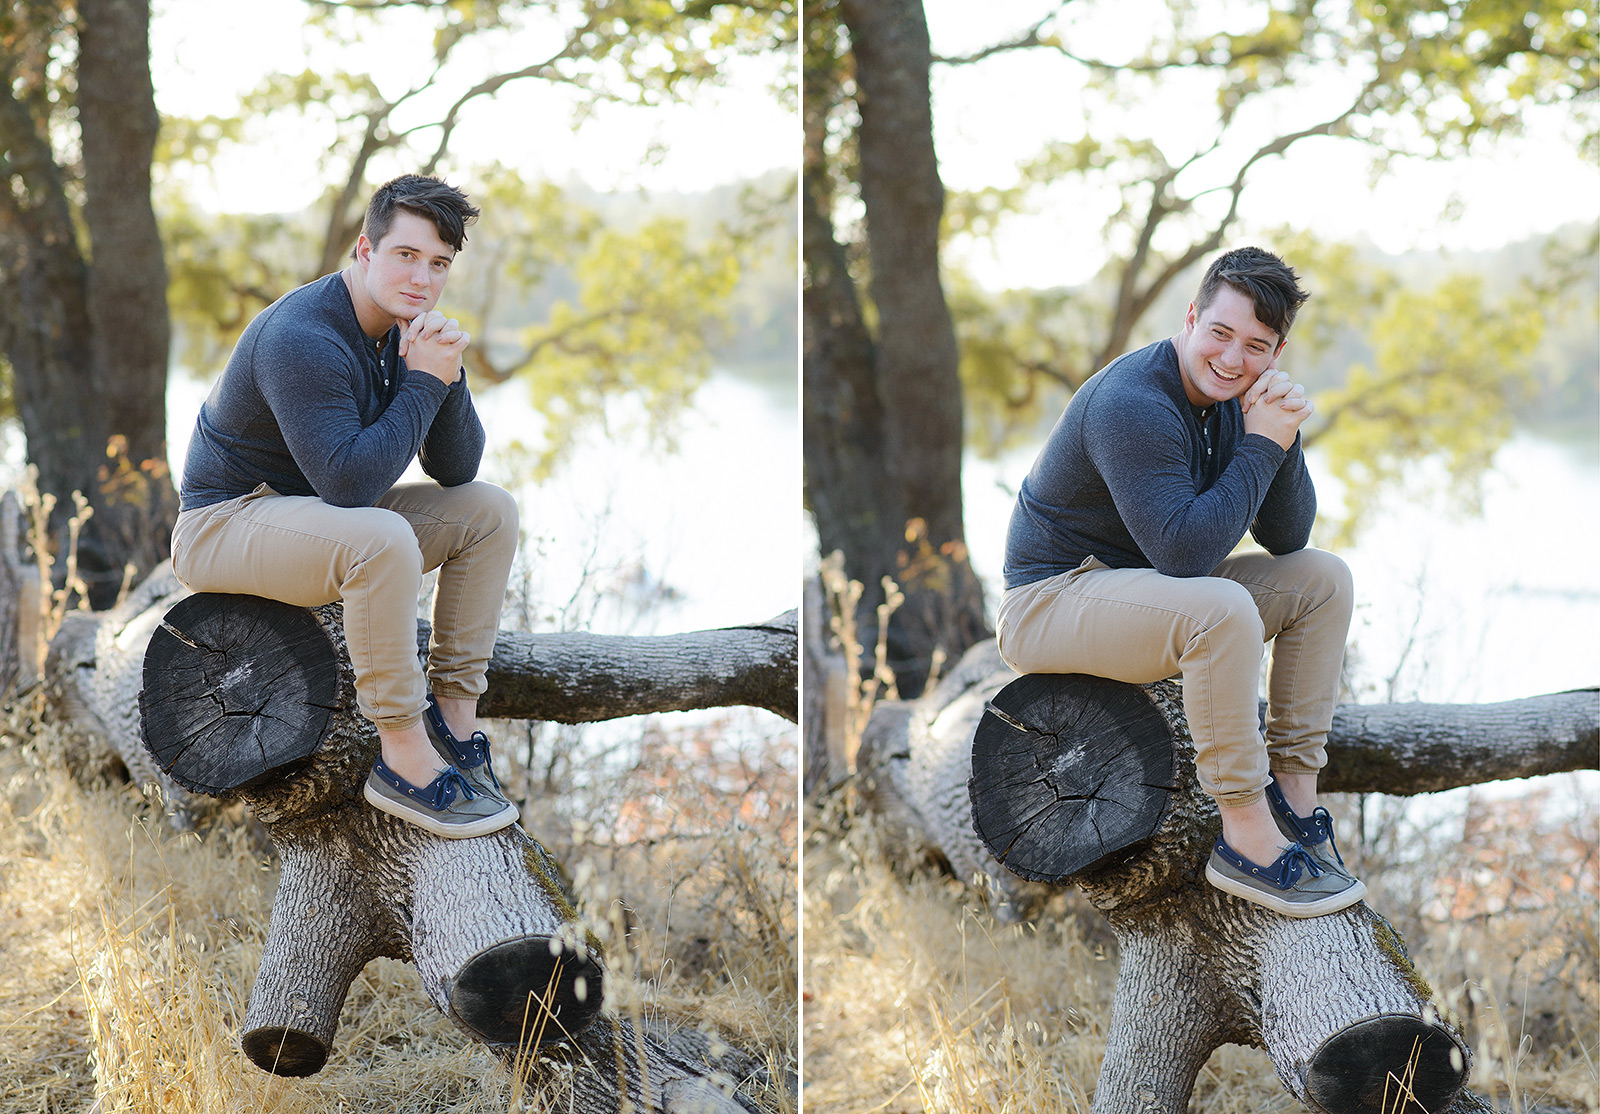 Male teen sitting on fallen log in Folsom park